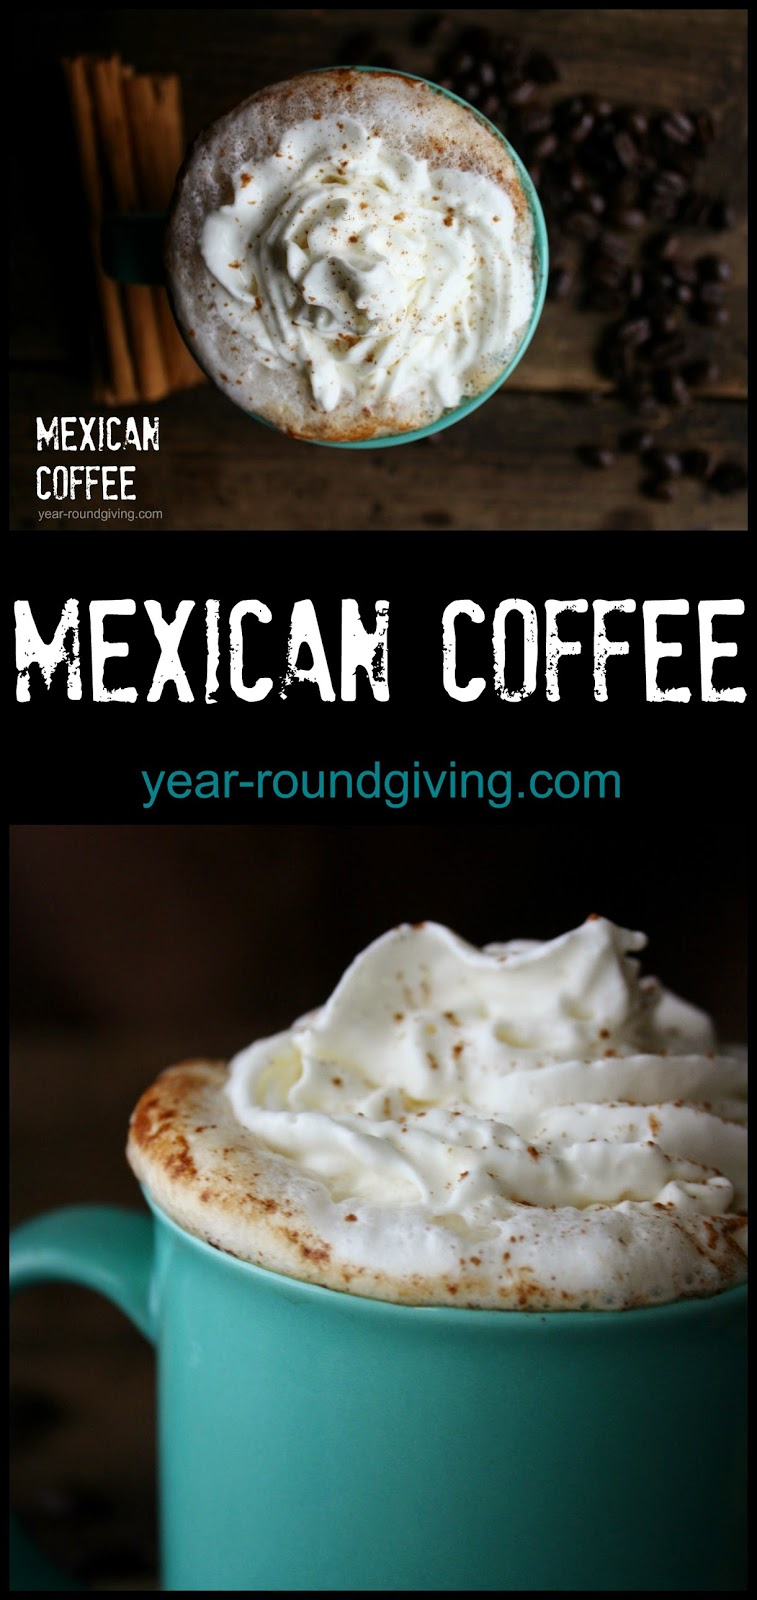 Mexican Coffee made with kahlau!